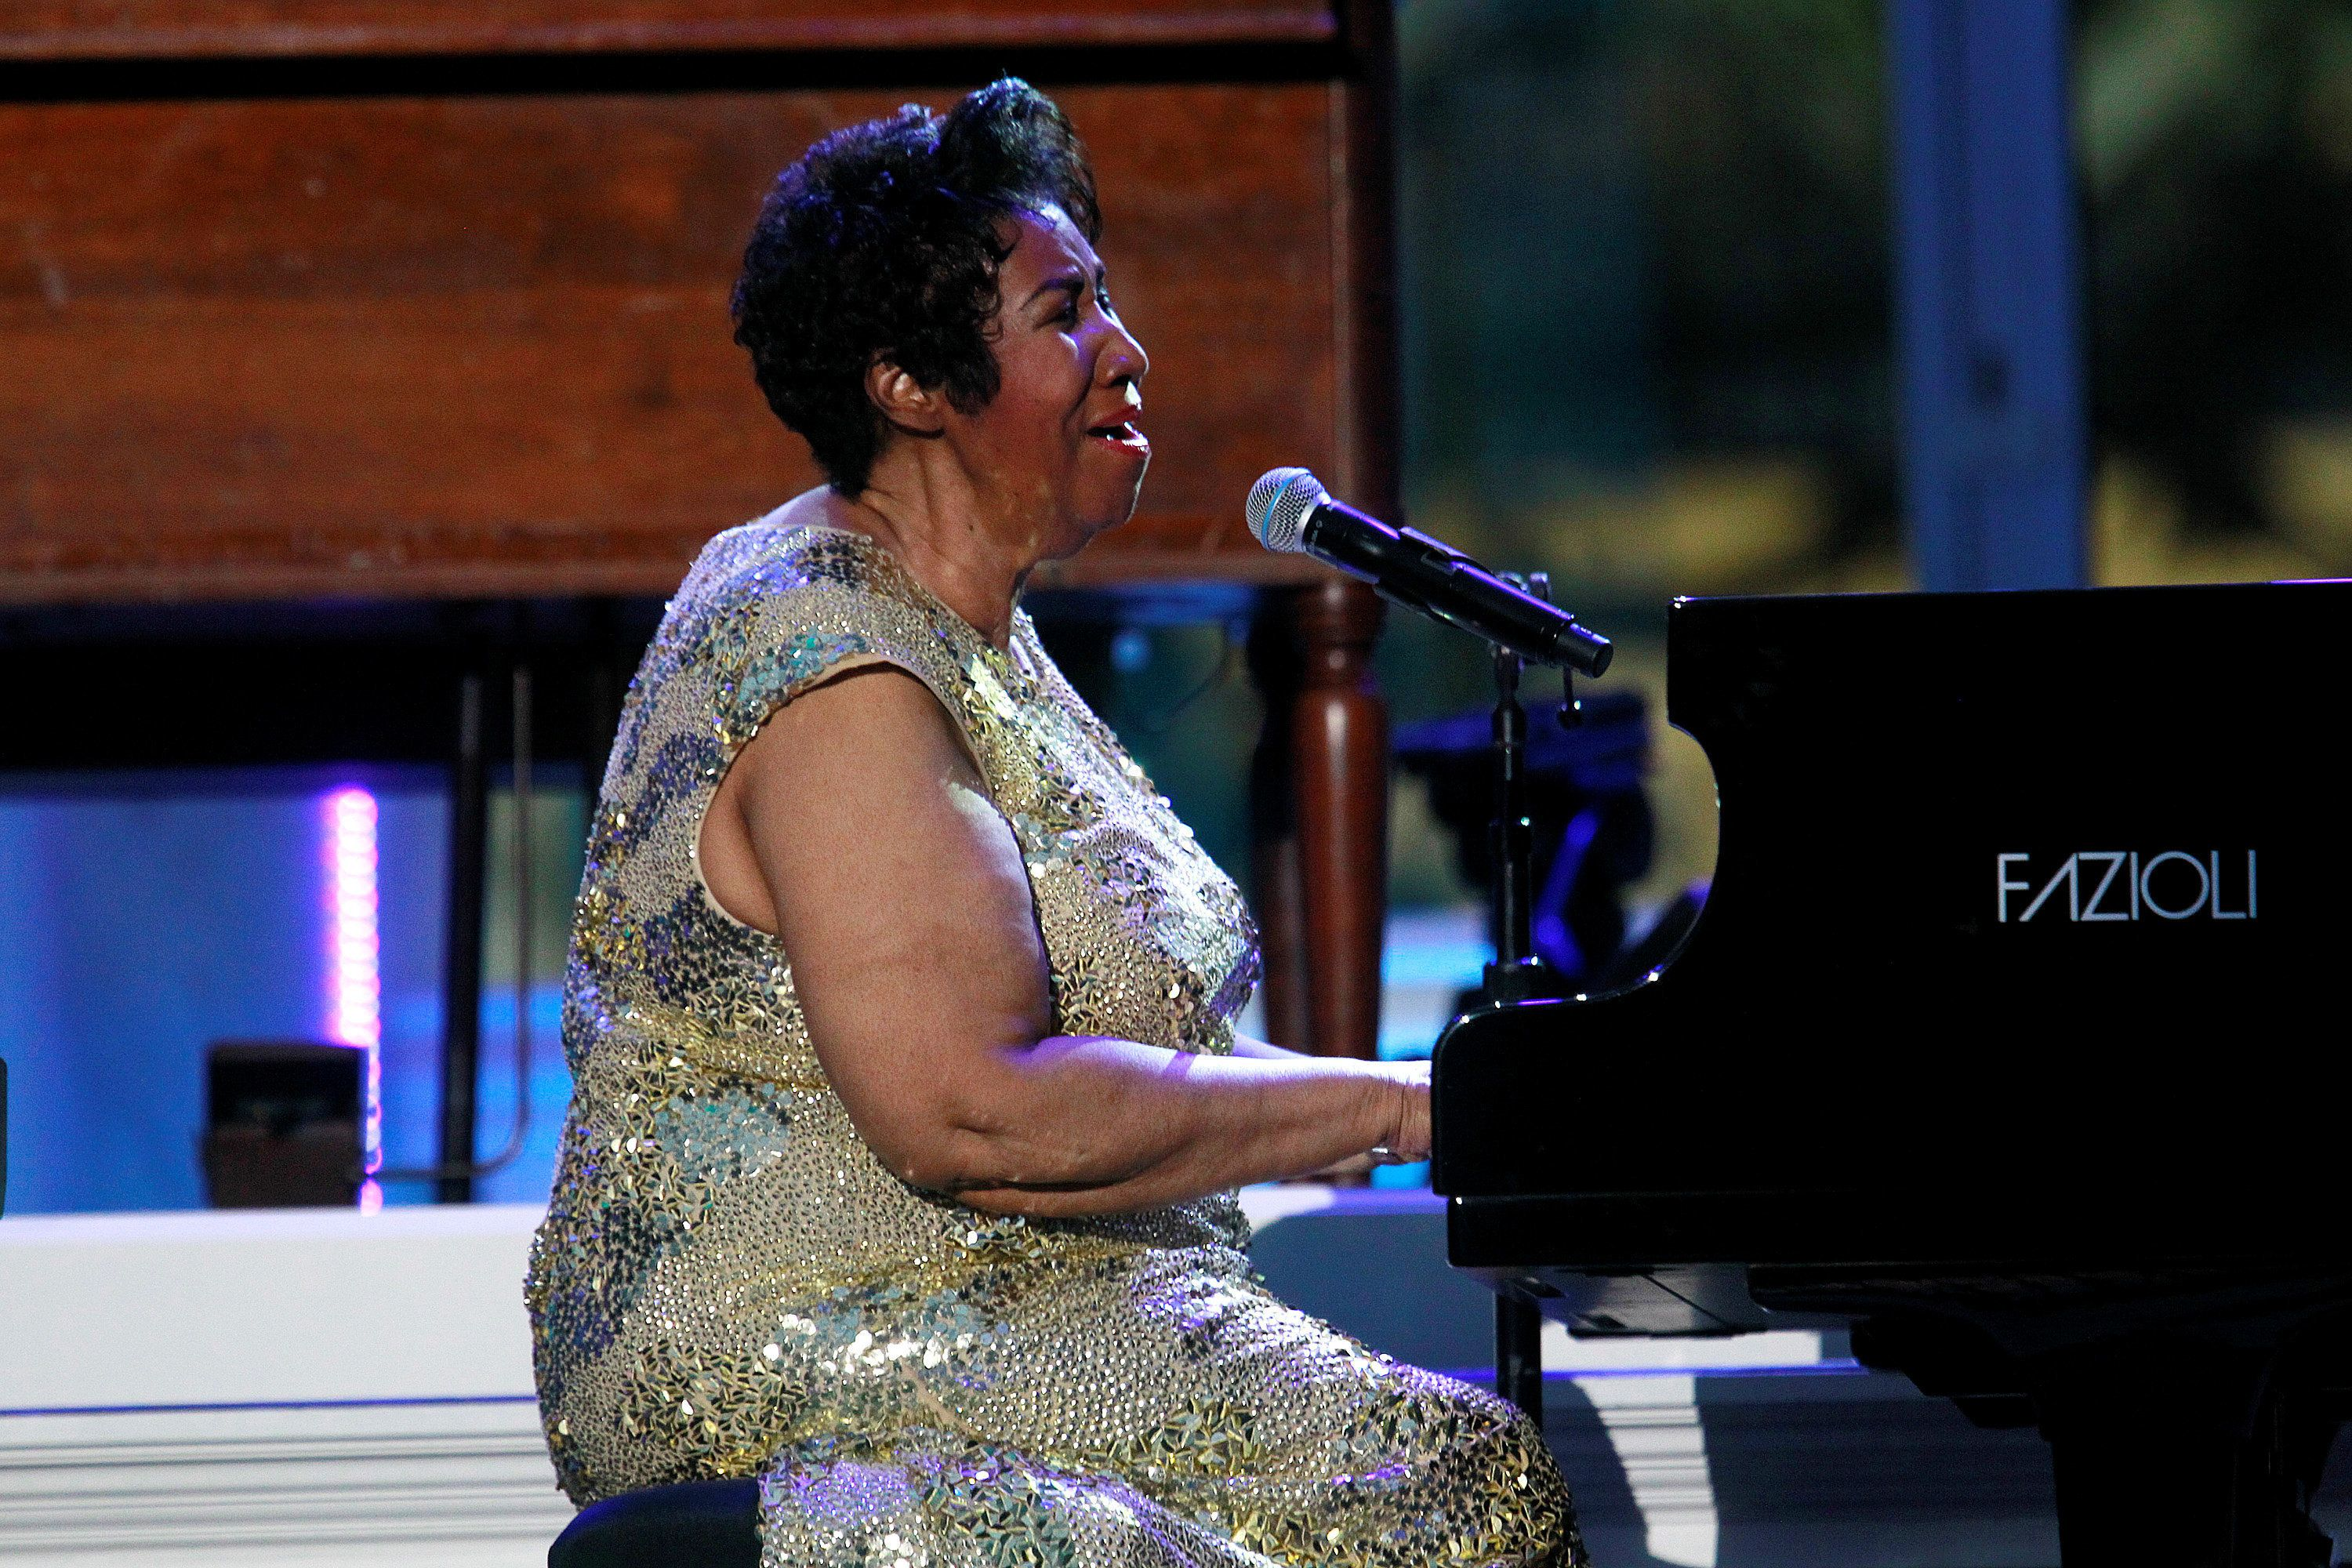 Stars pay respects to gravely ill Aretha Franklin; tribute concert planned